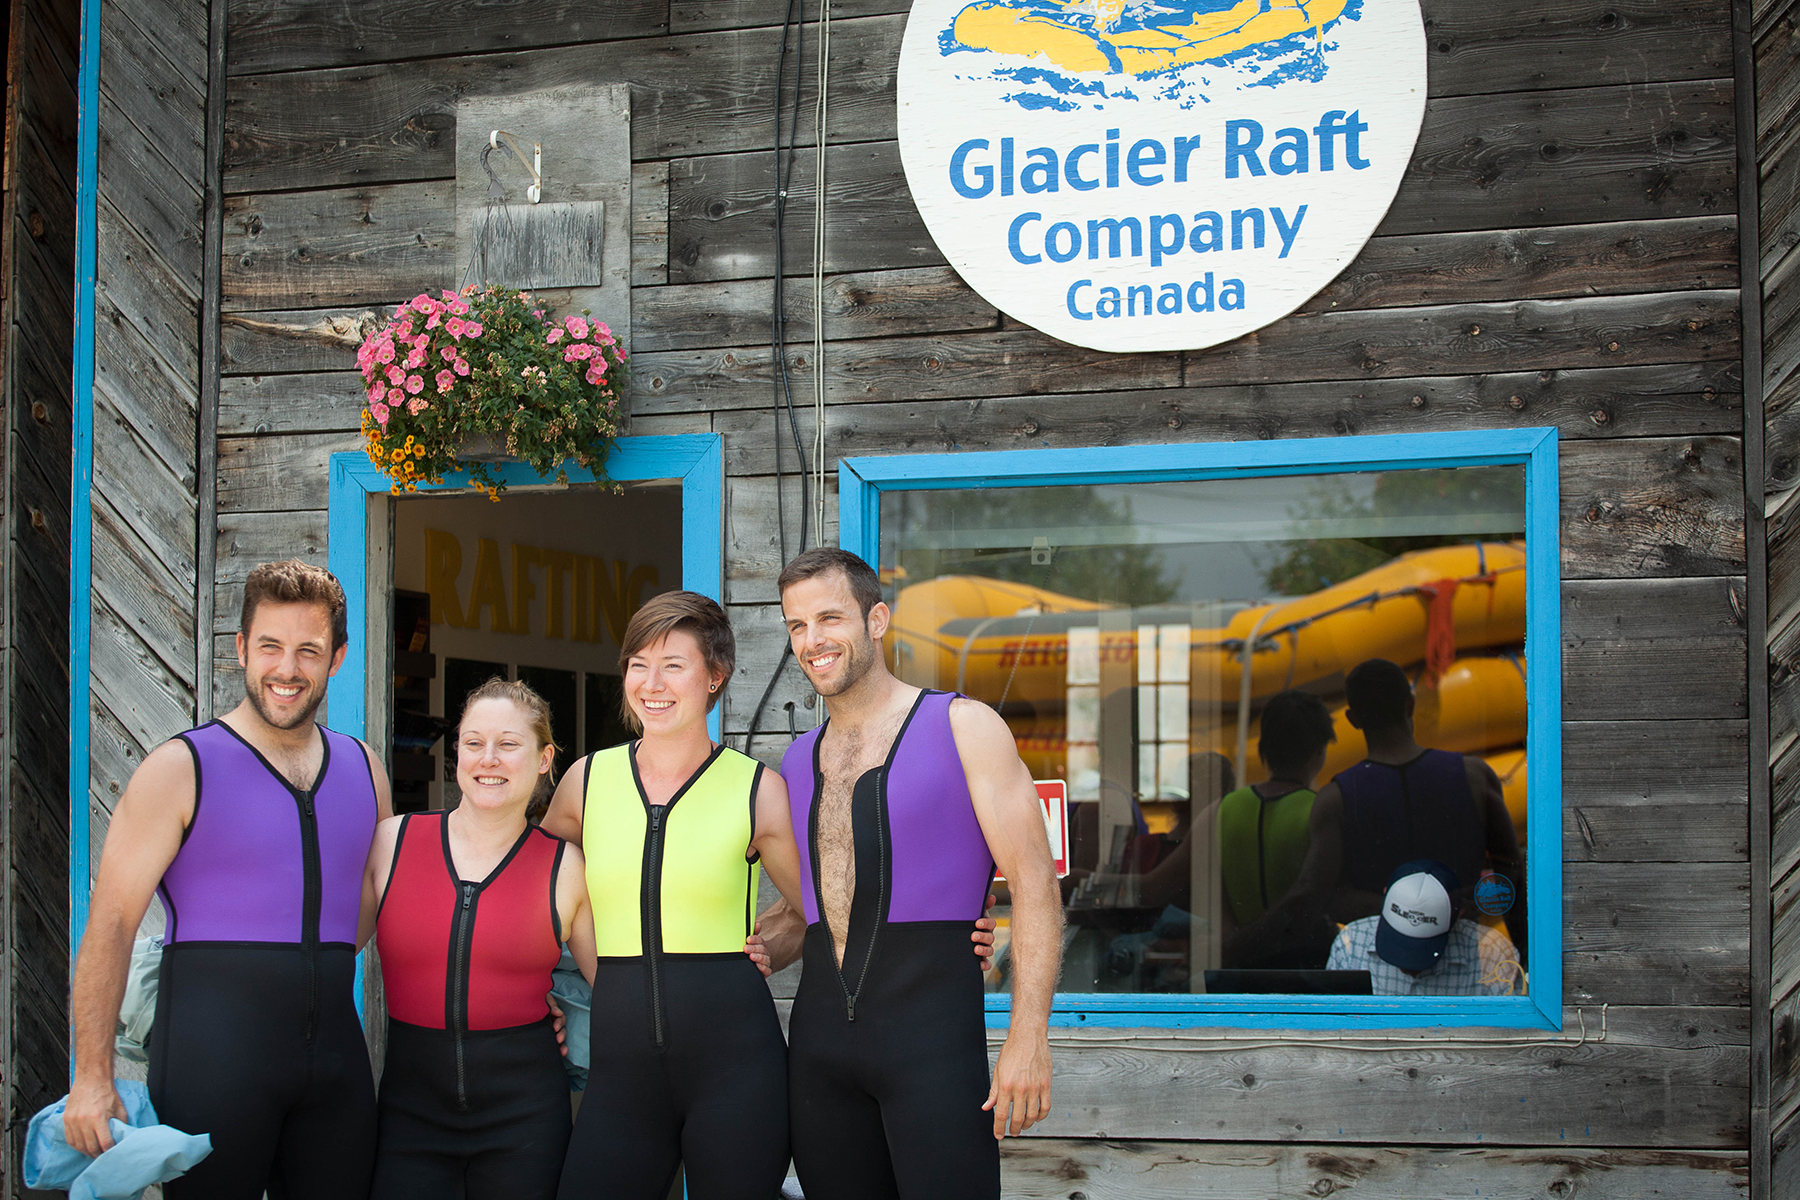 Four guests posing for a photo in front of the Glacier Raft Company base